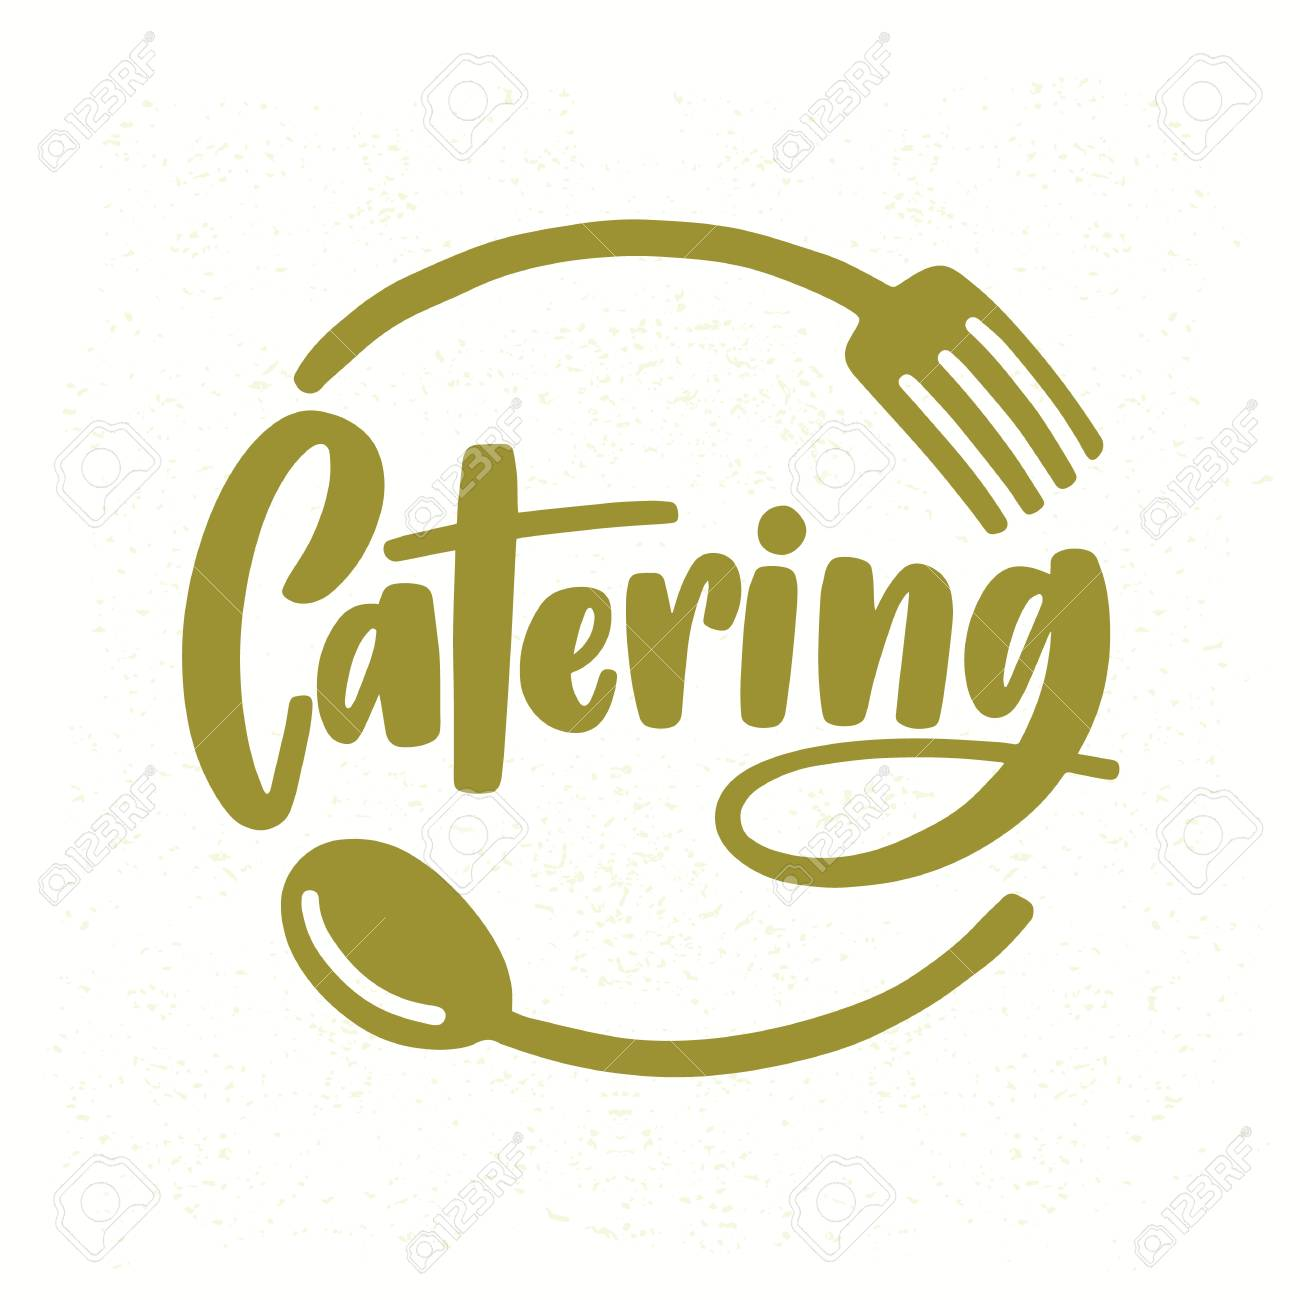 Catering From Anywhere